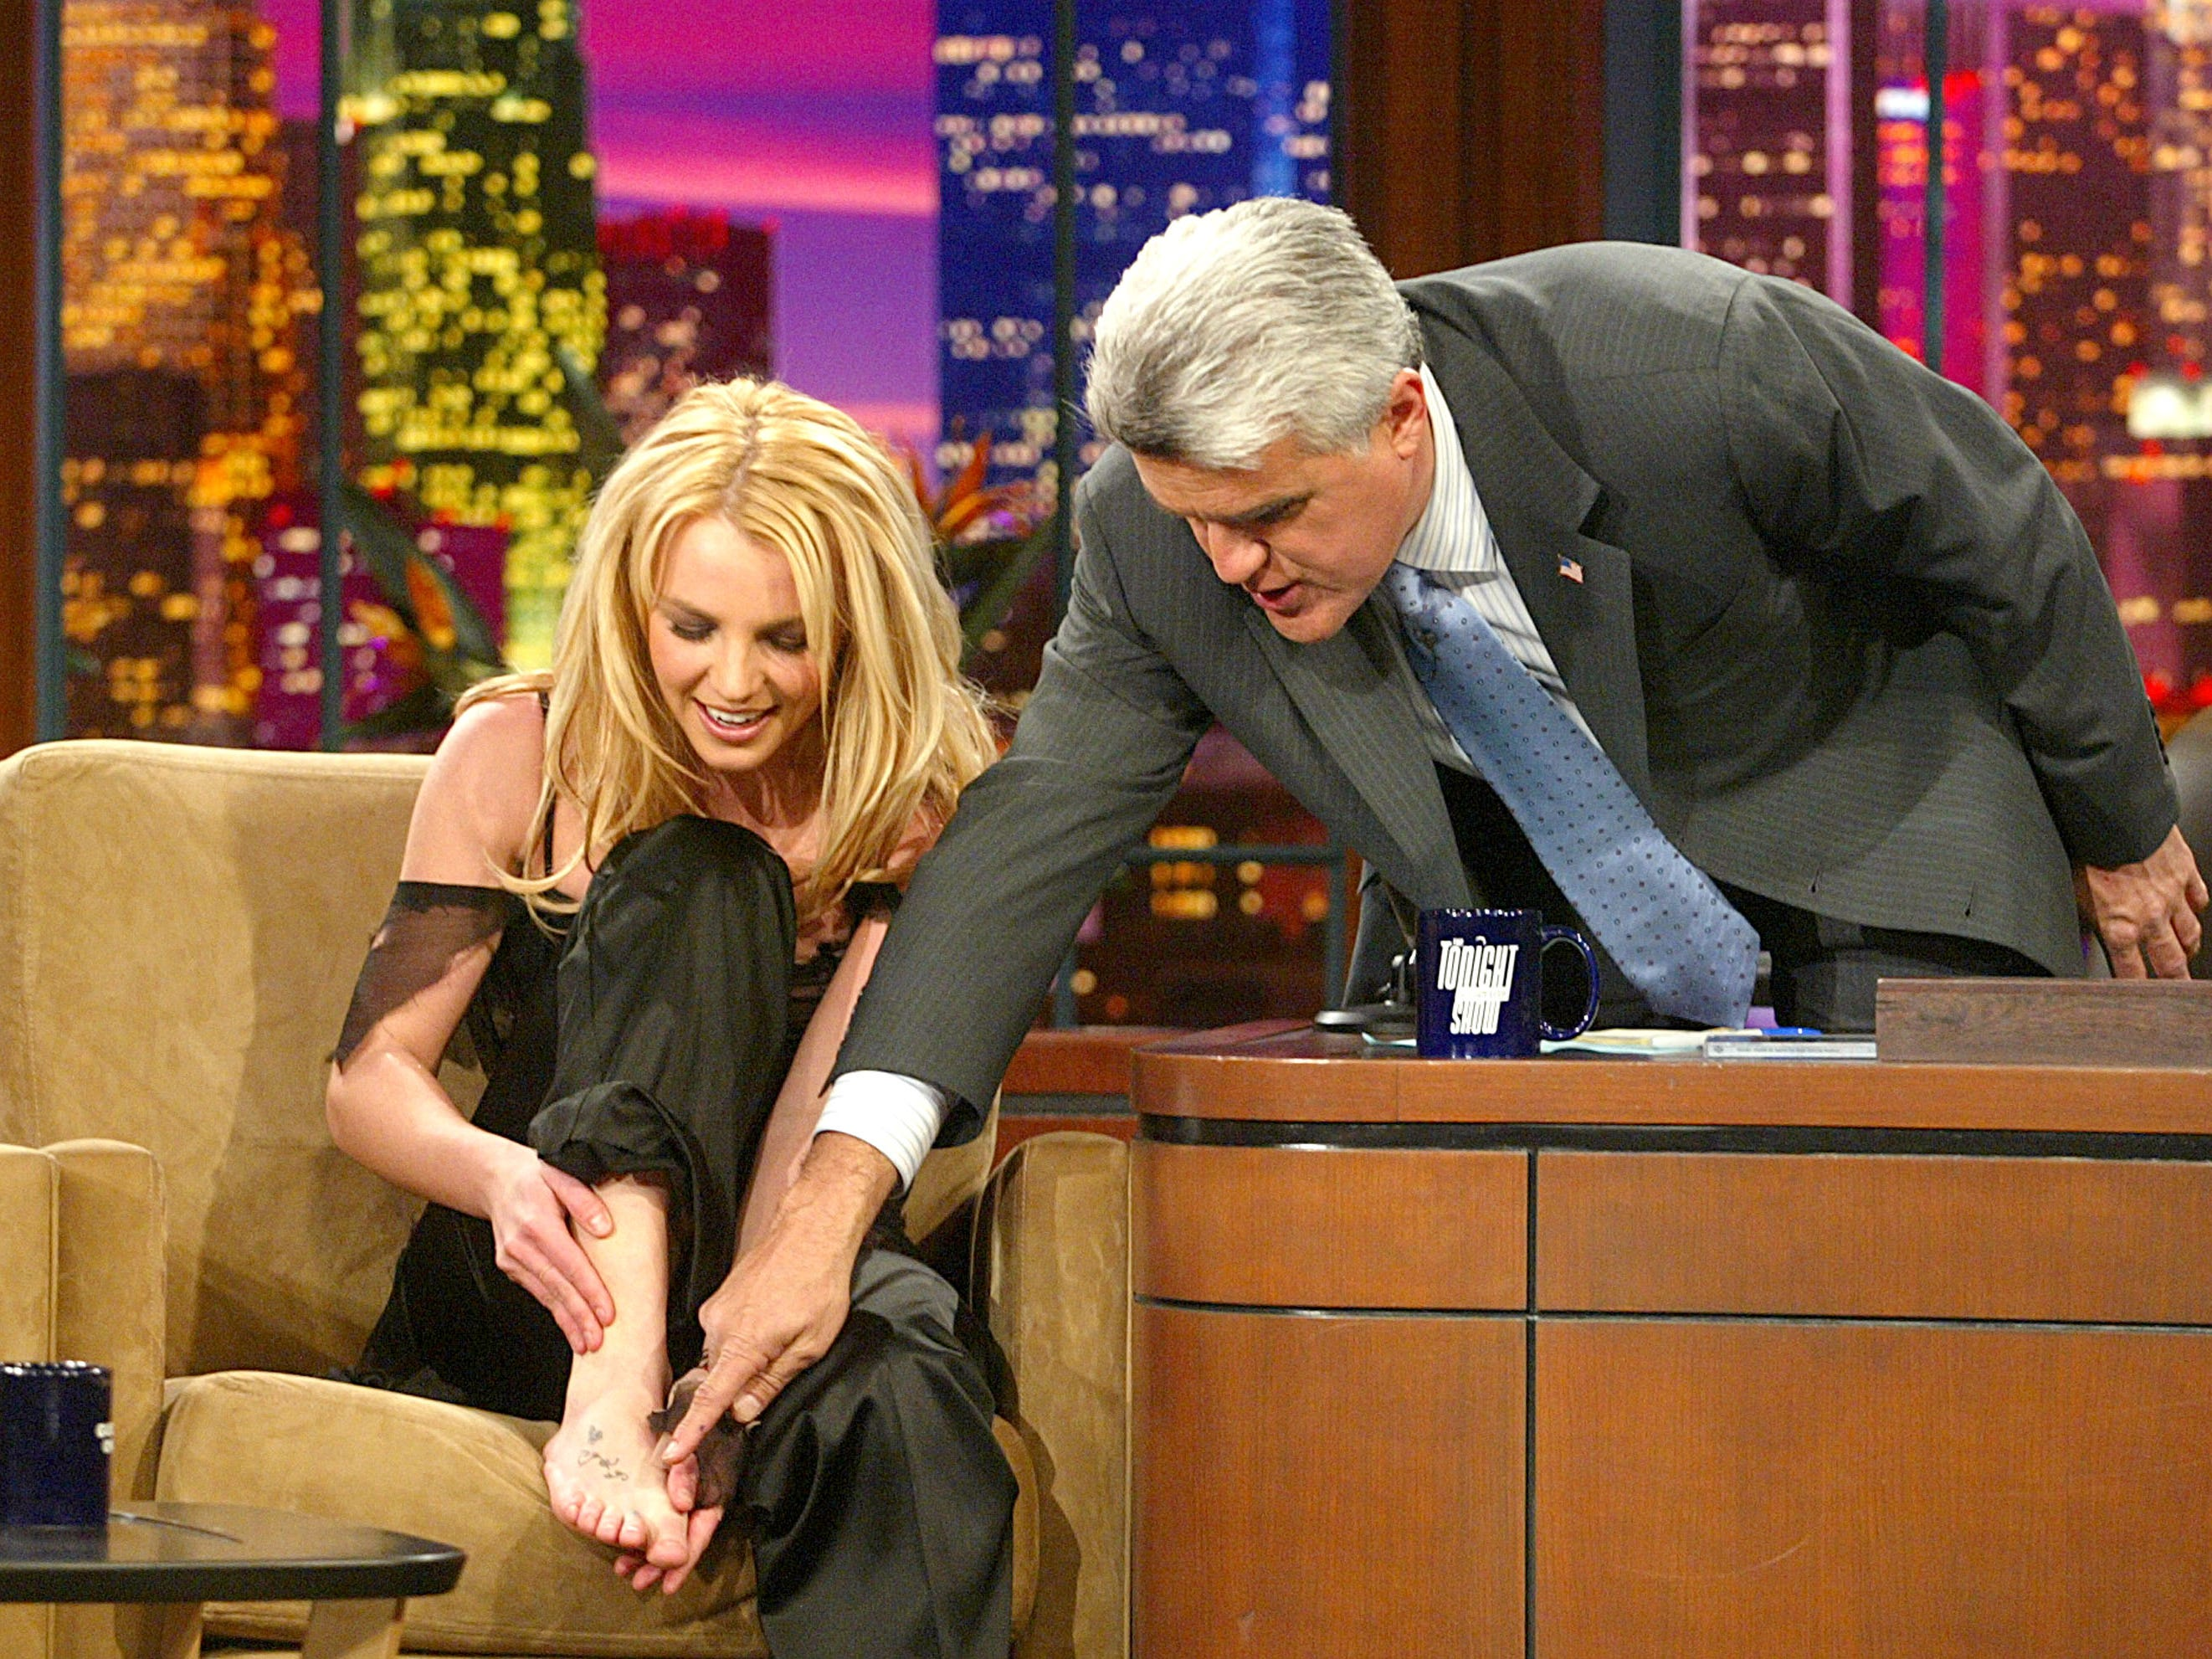 """BURBANK, CA - NOVEMBER 17:  Singer Britney Spears appears on """"The Tonight Show with Jay Leno"""" at the NBC Studios on November 17, 2003 in Burbank, California. (Photo by Kevin Winter/Getty Images) [Via MerlinFTP Drop]"""